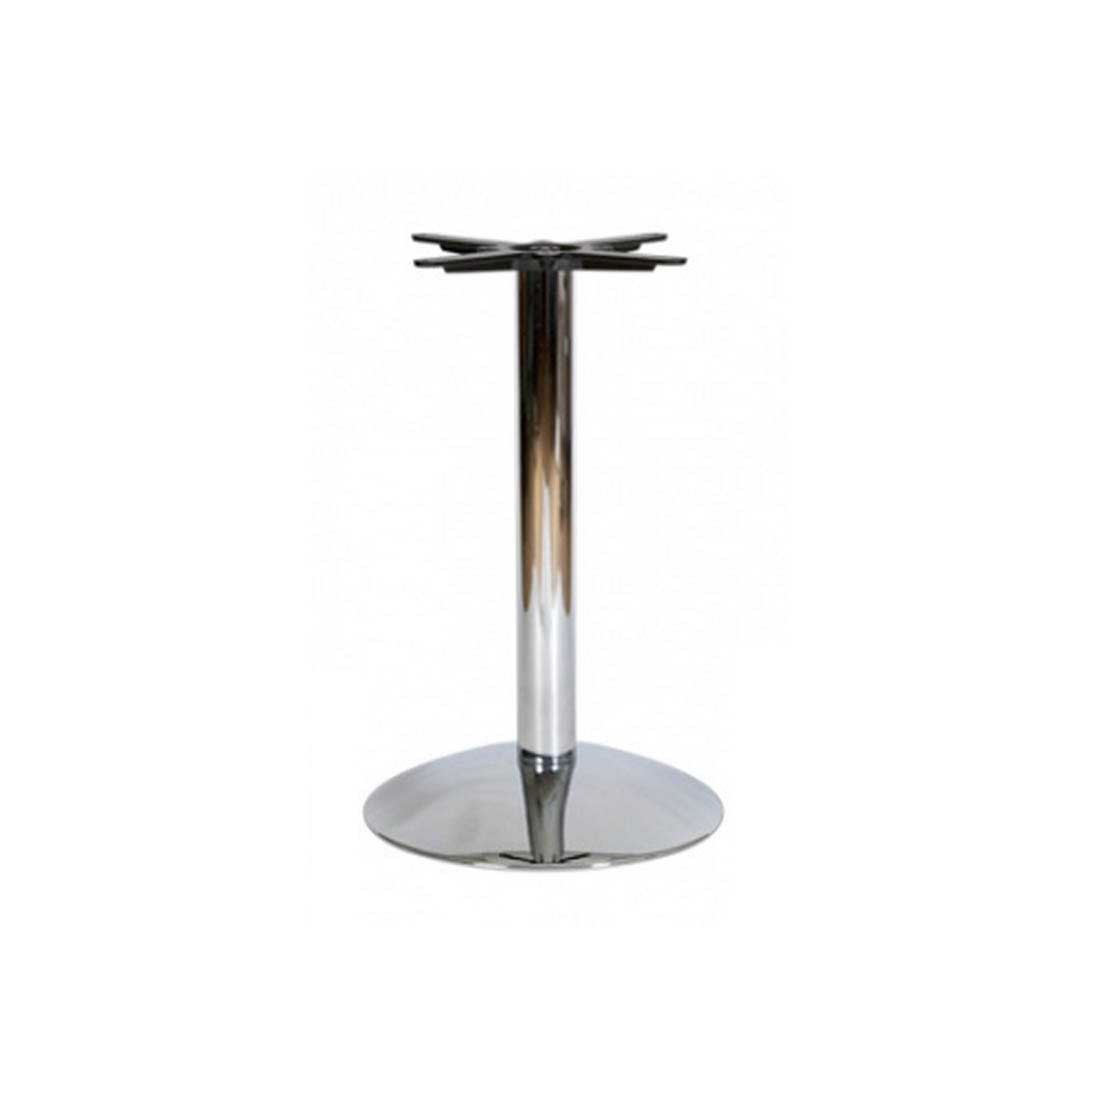 Oxton B1 Dining Table Base Forest Contract